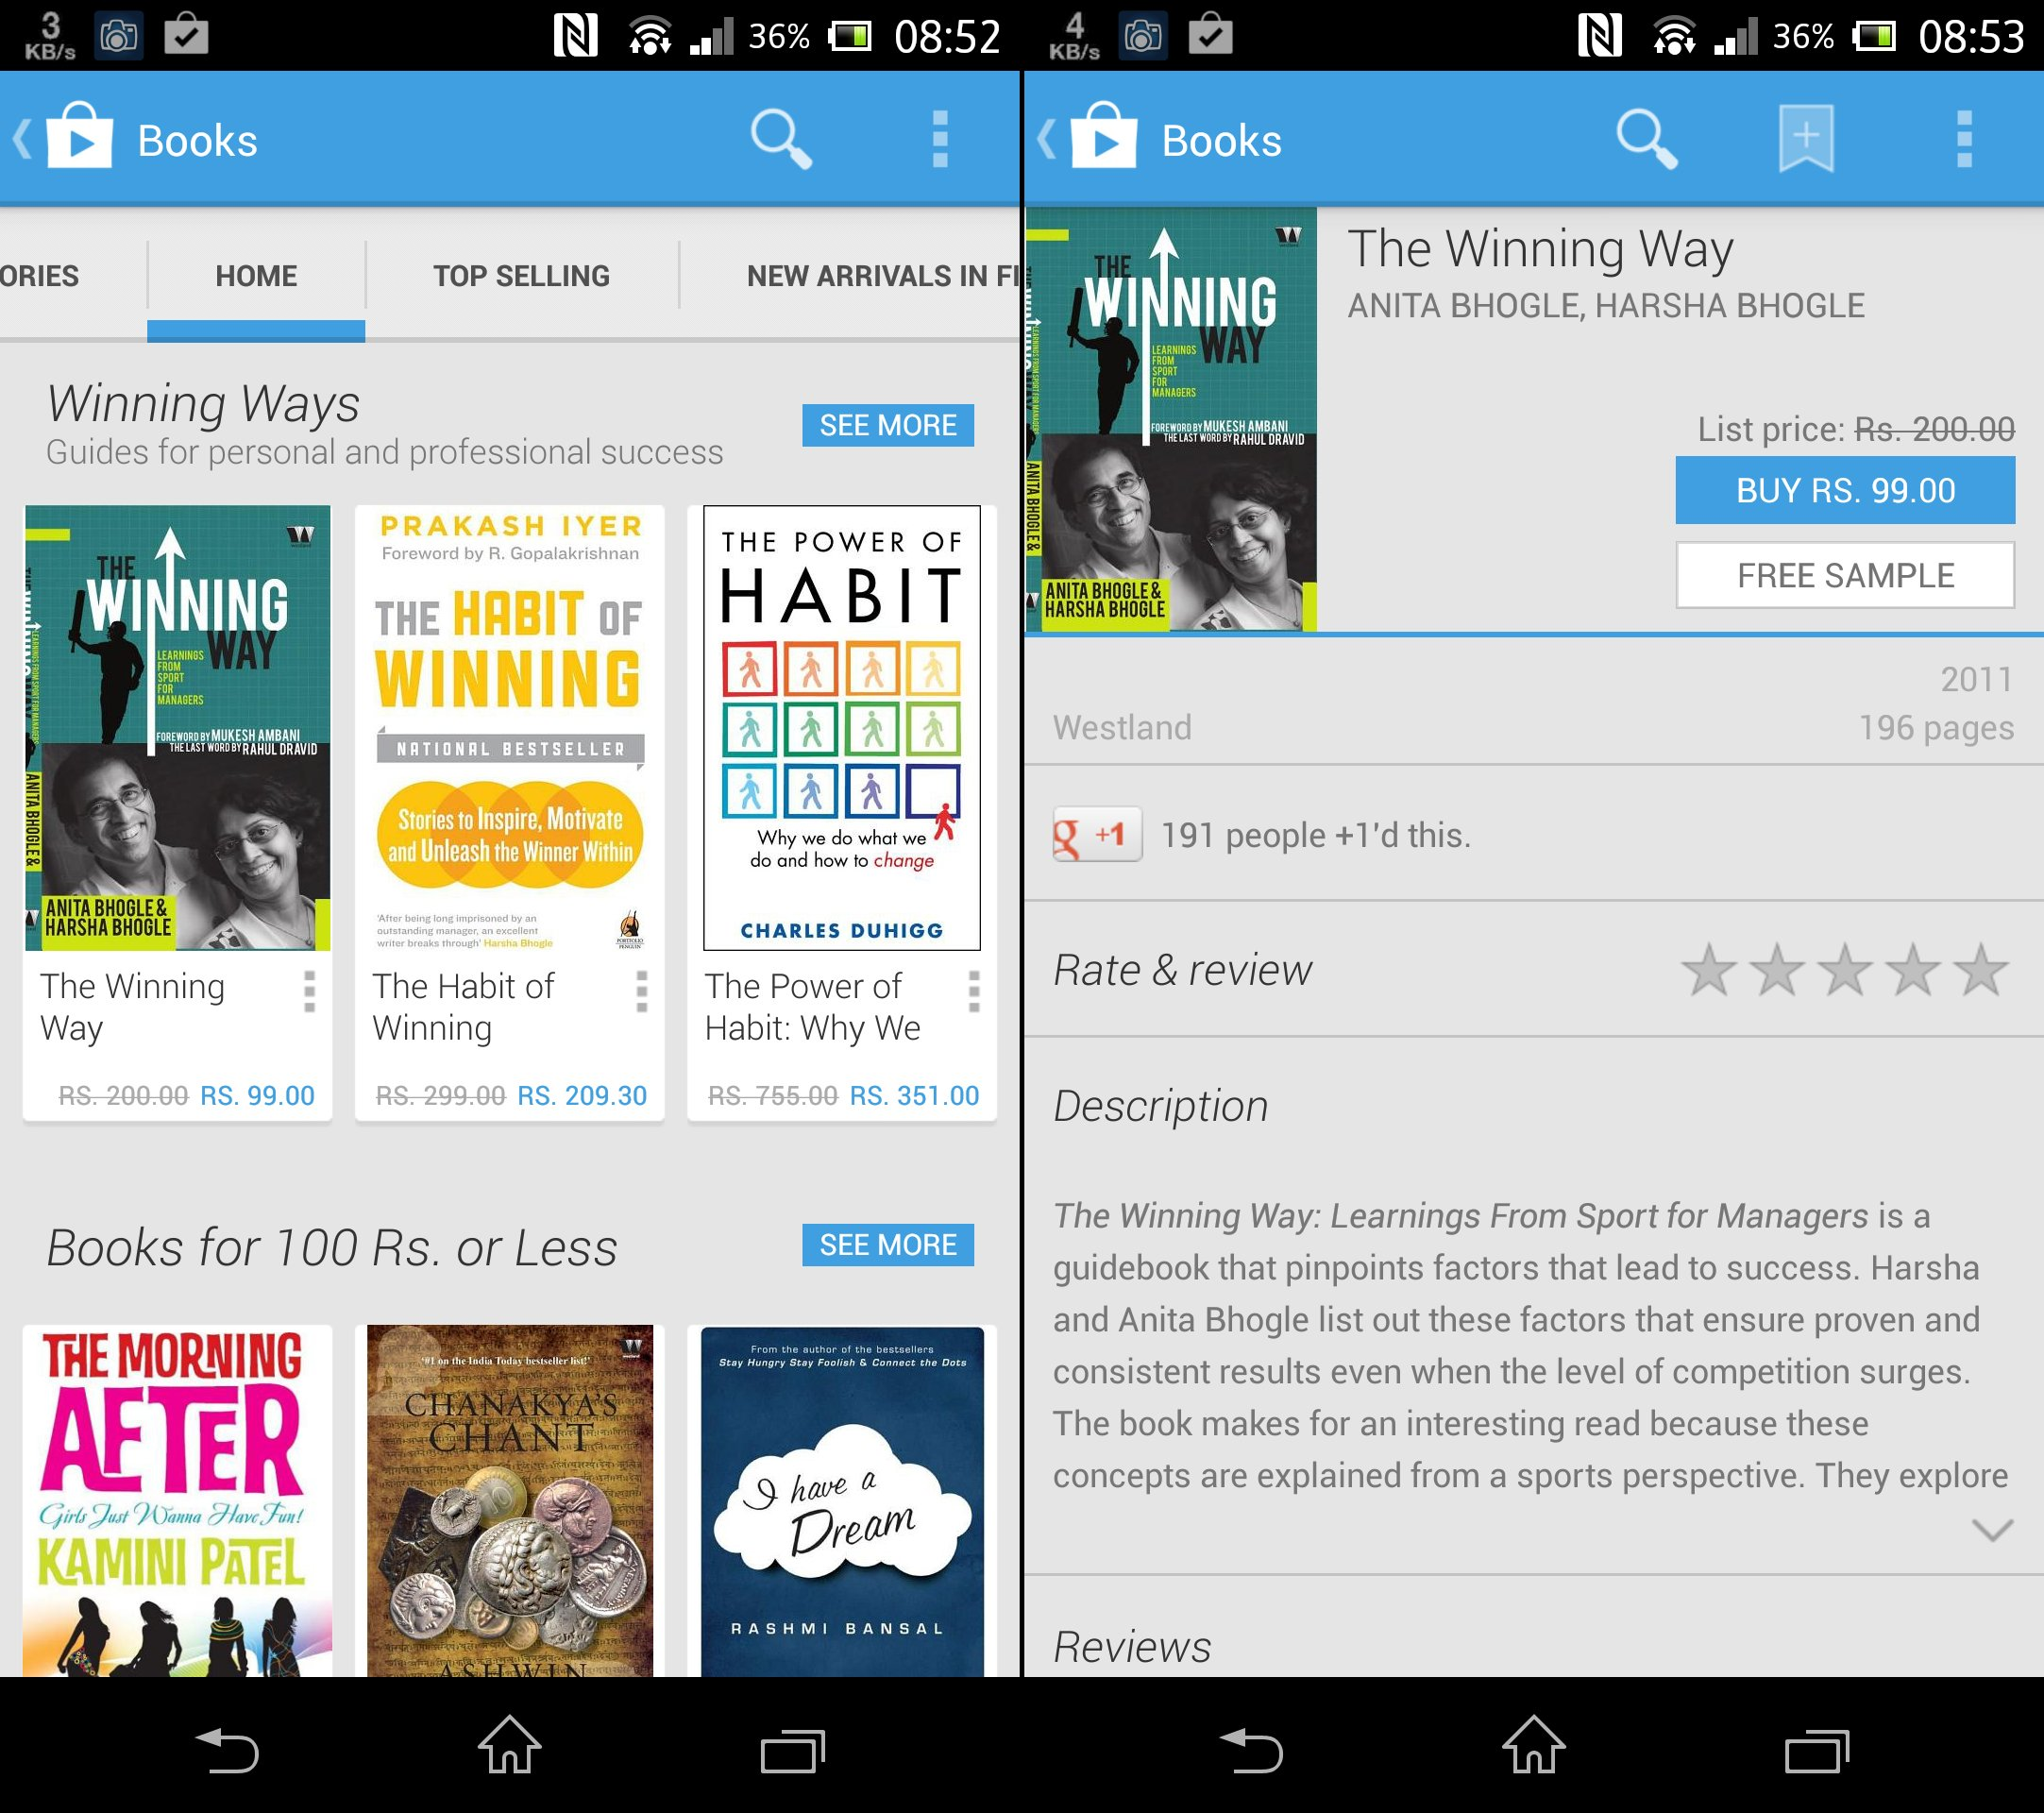 Google Play Books Full List Prices